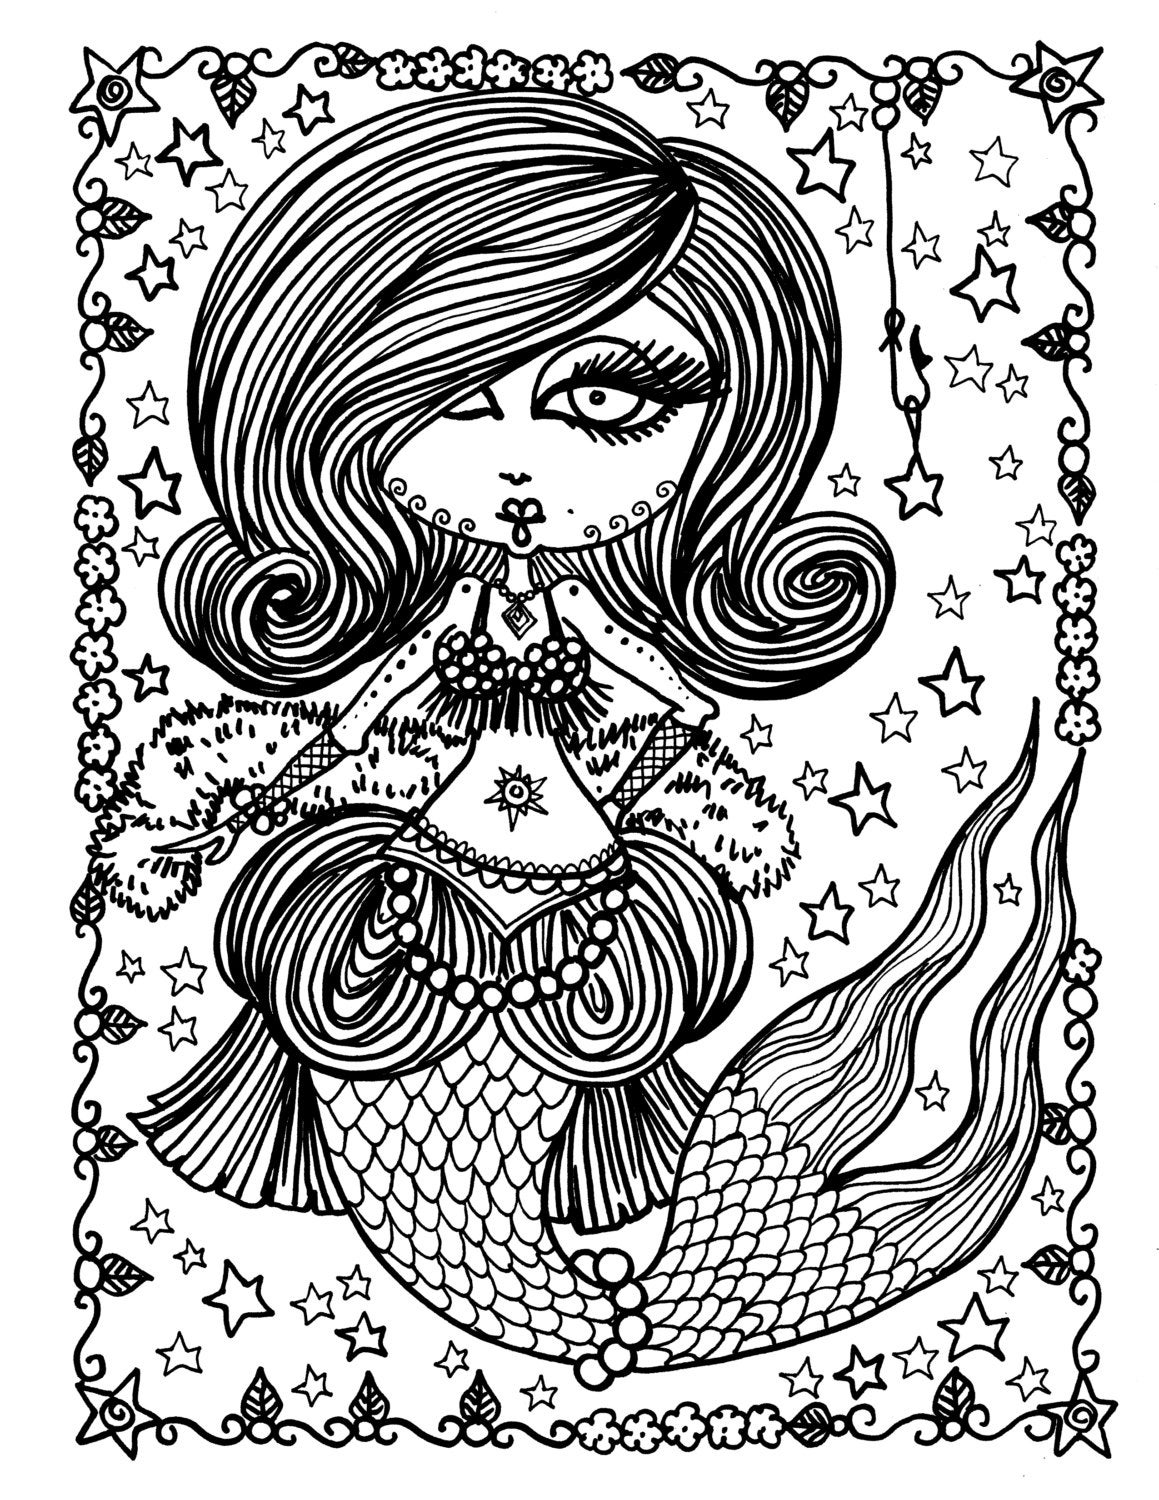 5 Pages Burlesque Mermaids to Color Digital Coloring for